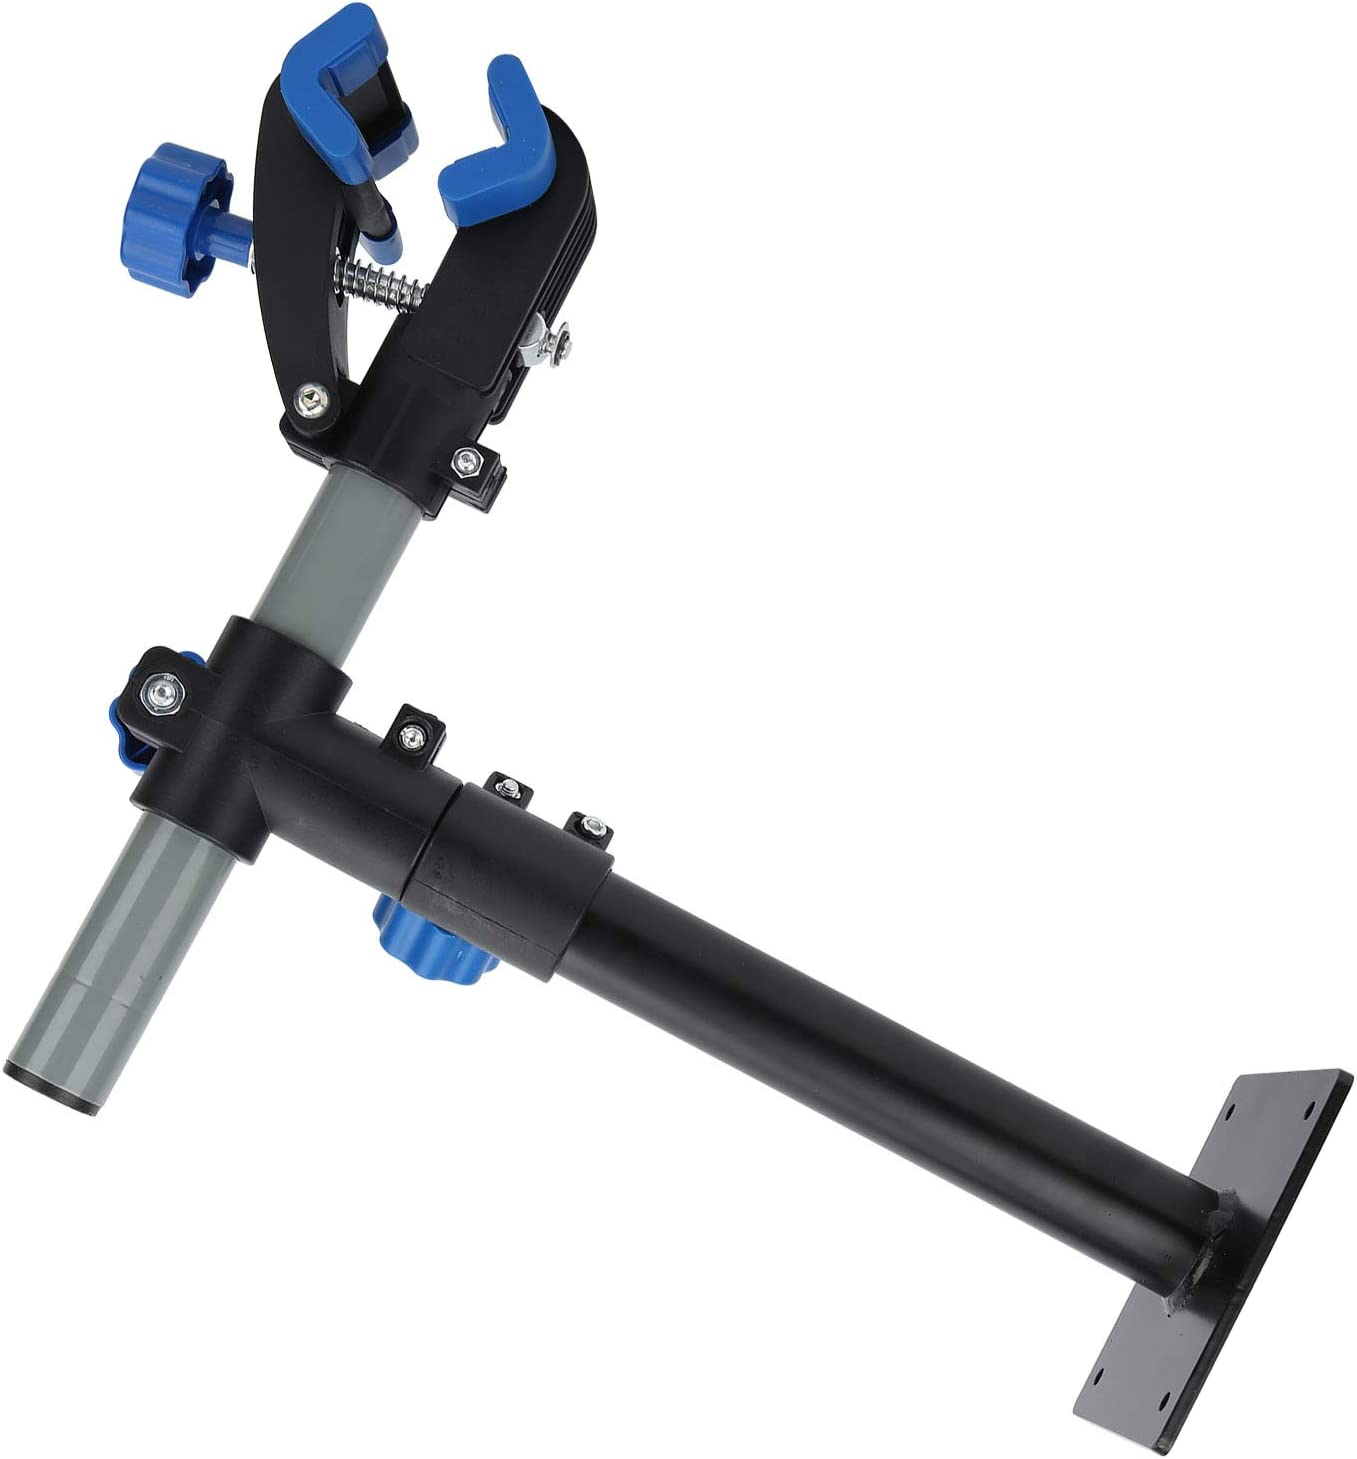 Velaurs Bike Max 48% OFF Repair Wall Stand Cheap mail order specialty store Workstand Wear‑R